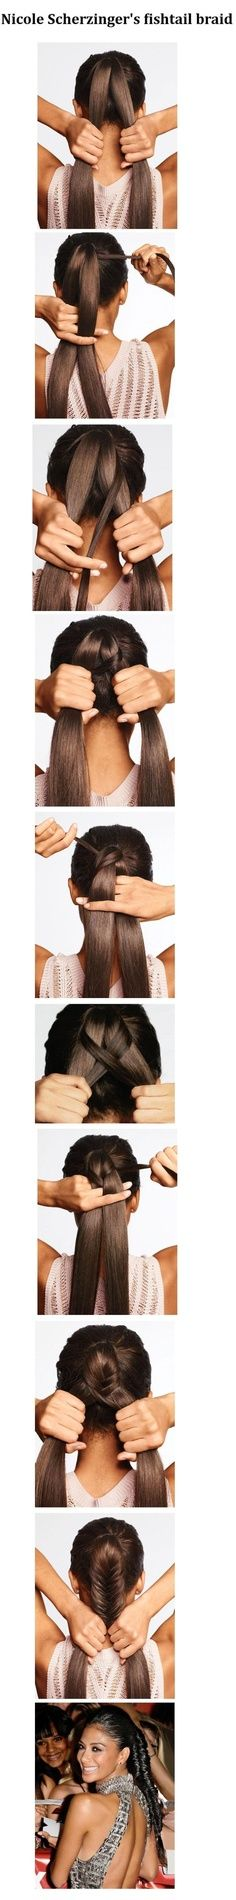 nicole scherzinger's fishtail braid - Wonder if I could convince K to sit still long enough to do this?